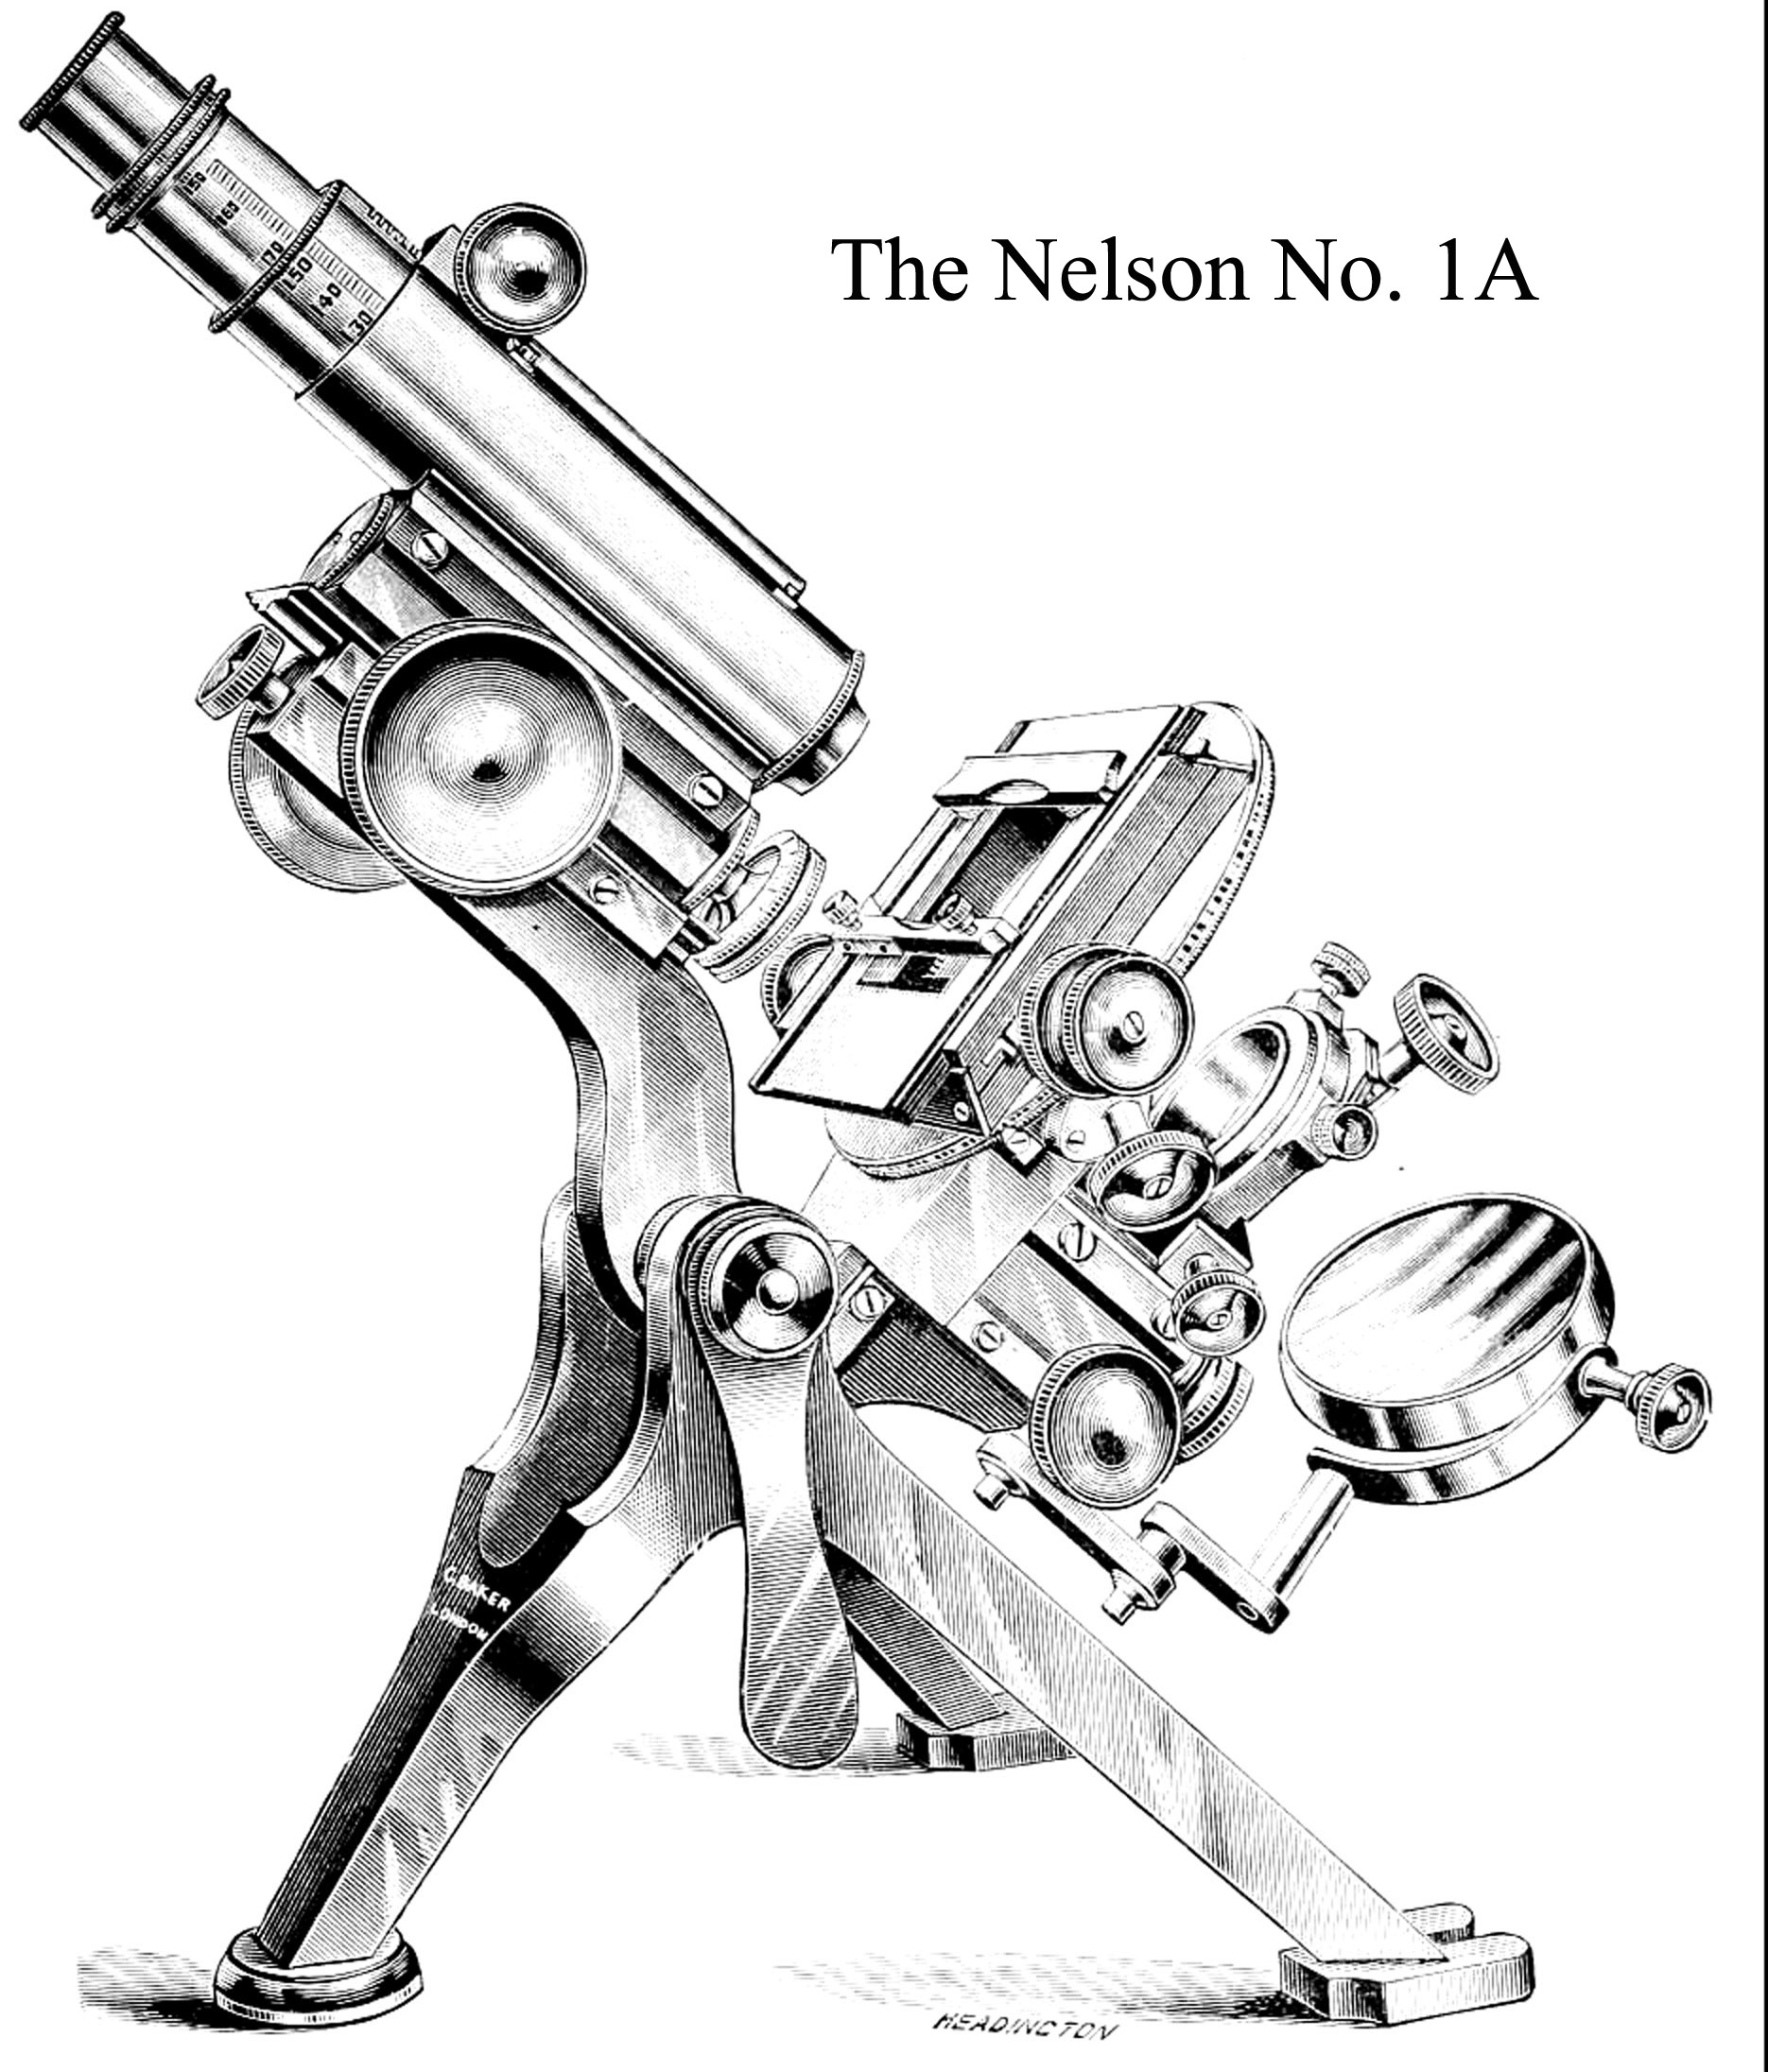 Catalog engraving of Nelson microscope